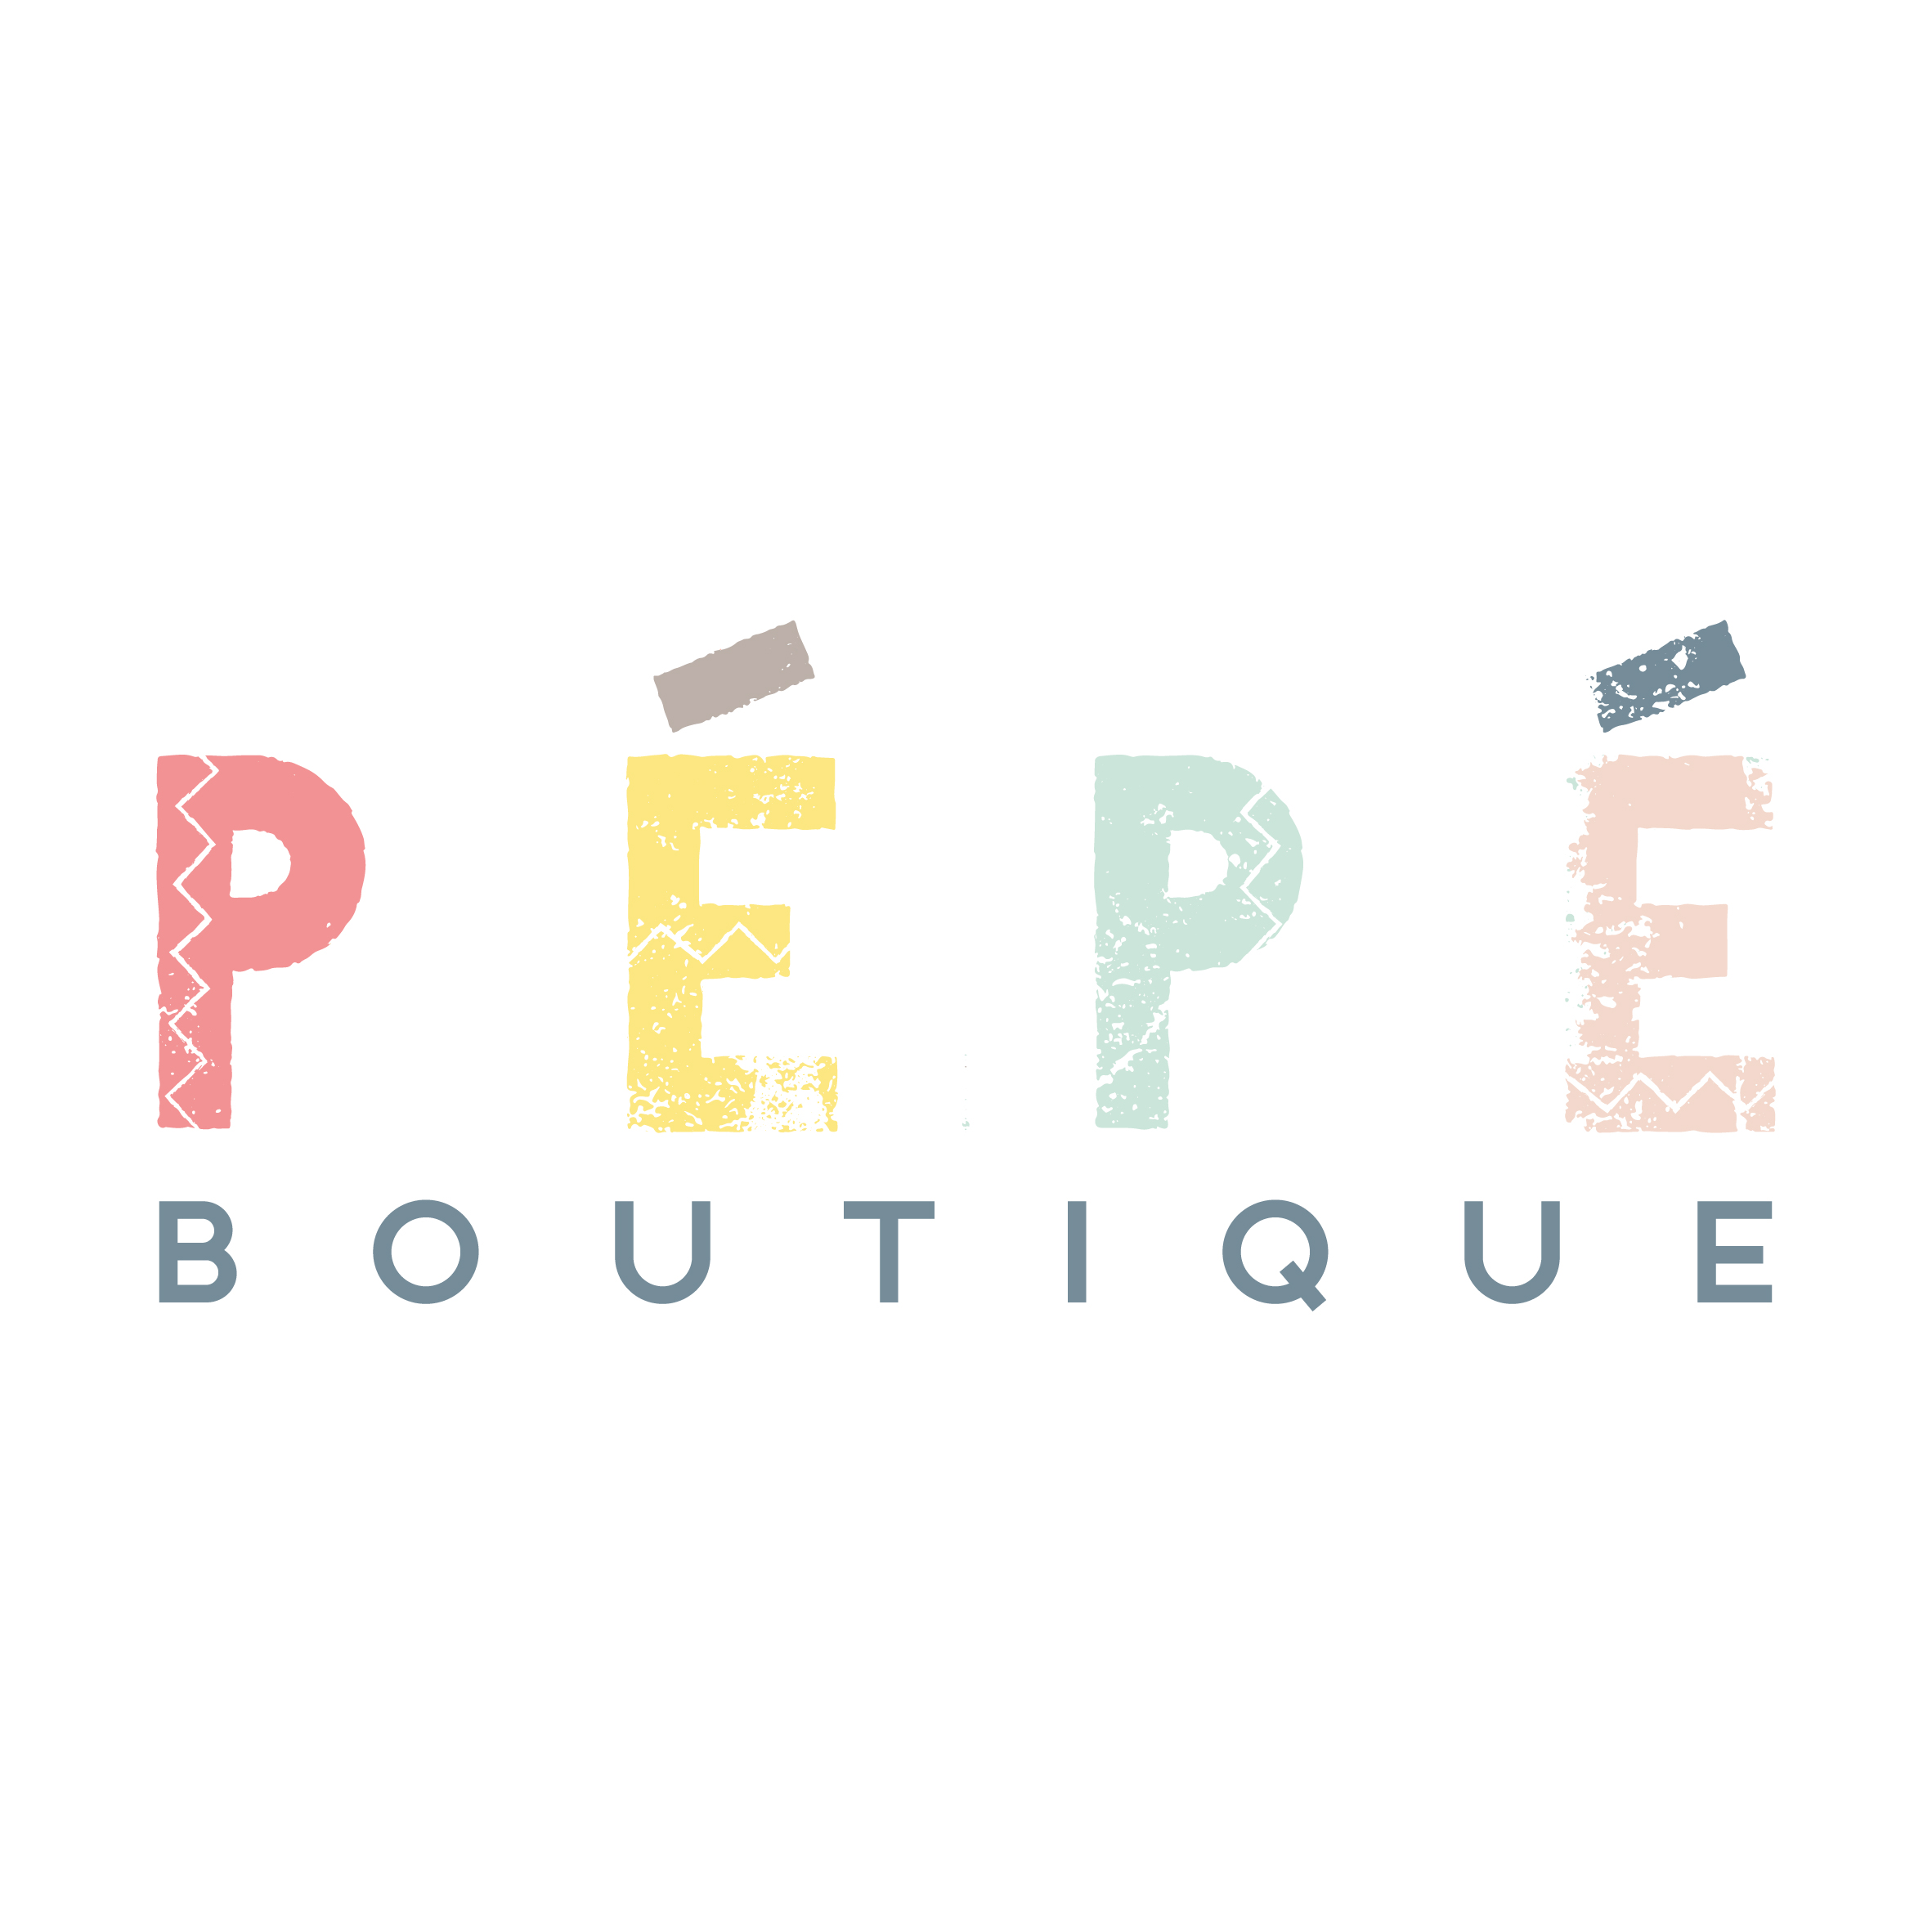 Pepe Boutique